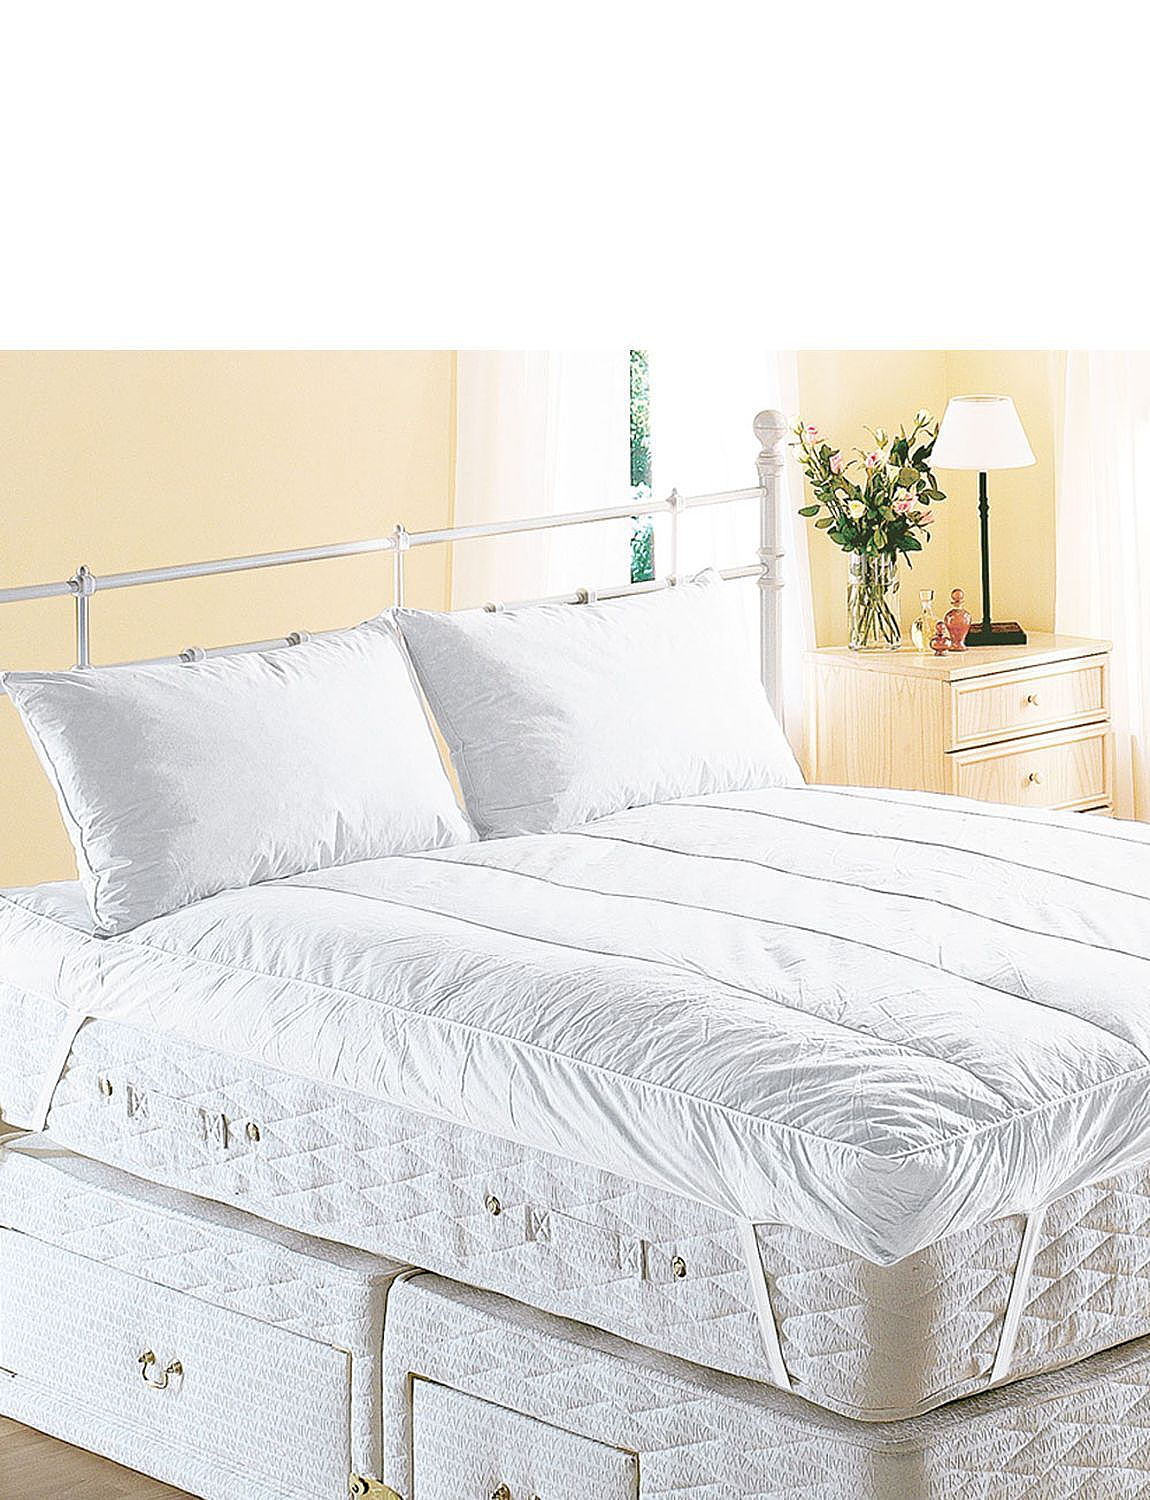 inch feather product featherbed box hotel grand baffle today shipping bed bedding gusset downtop free overstock luxurious bath